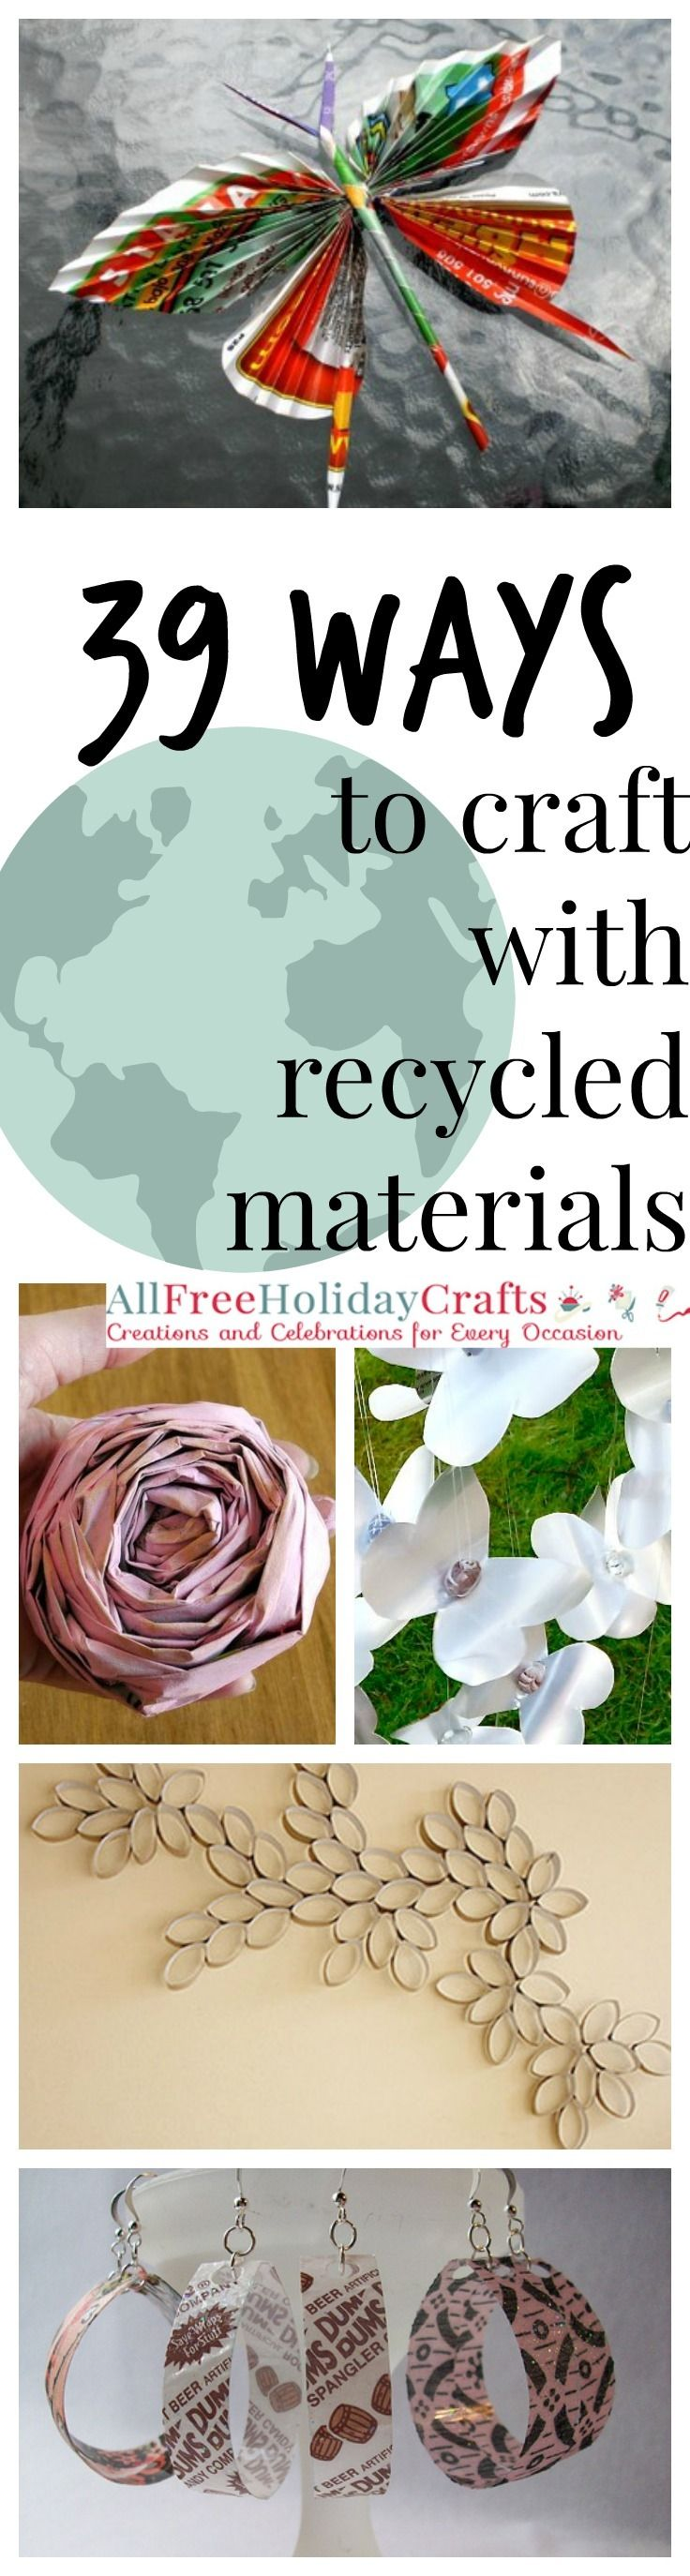 39 Ways to Craft with Recycled Materials